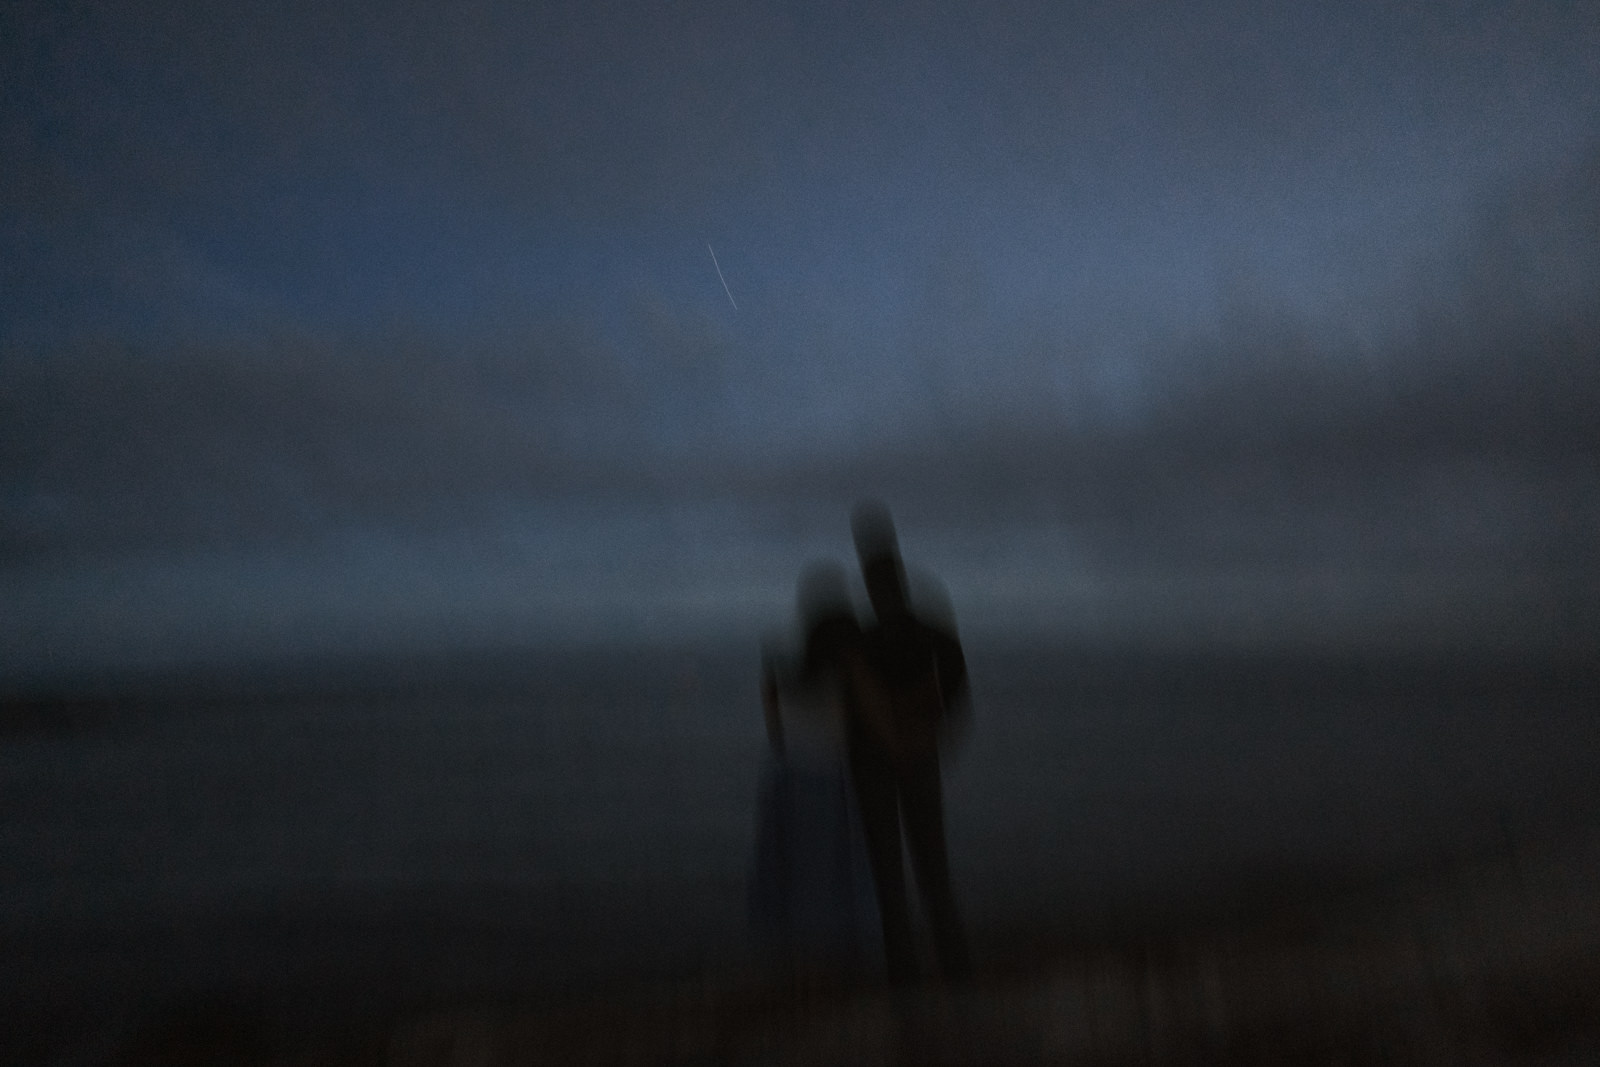 beach Blue Hour - astrophotography engagement session vancouver island-38.jpg